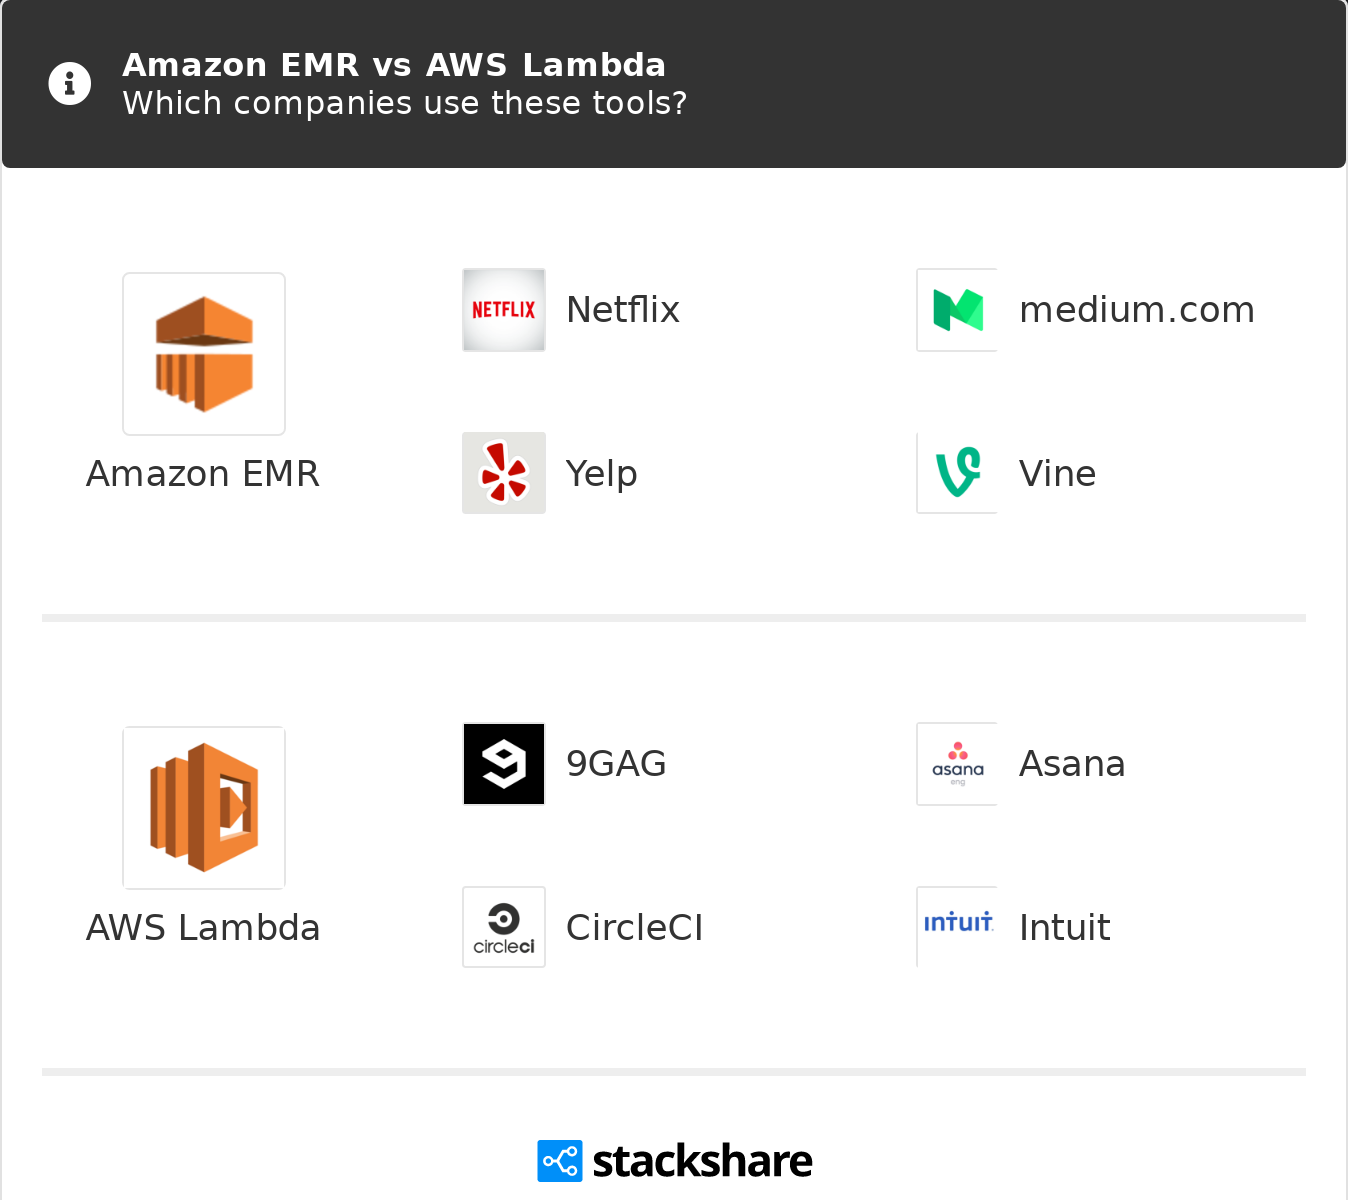 Amazon EMR vs AWS Lambda | What are the differences?